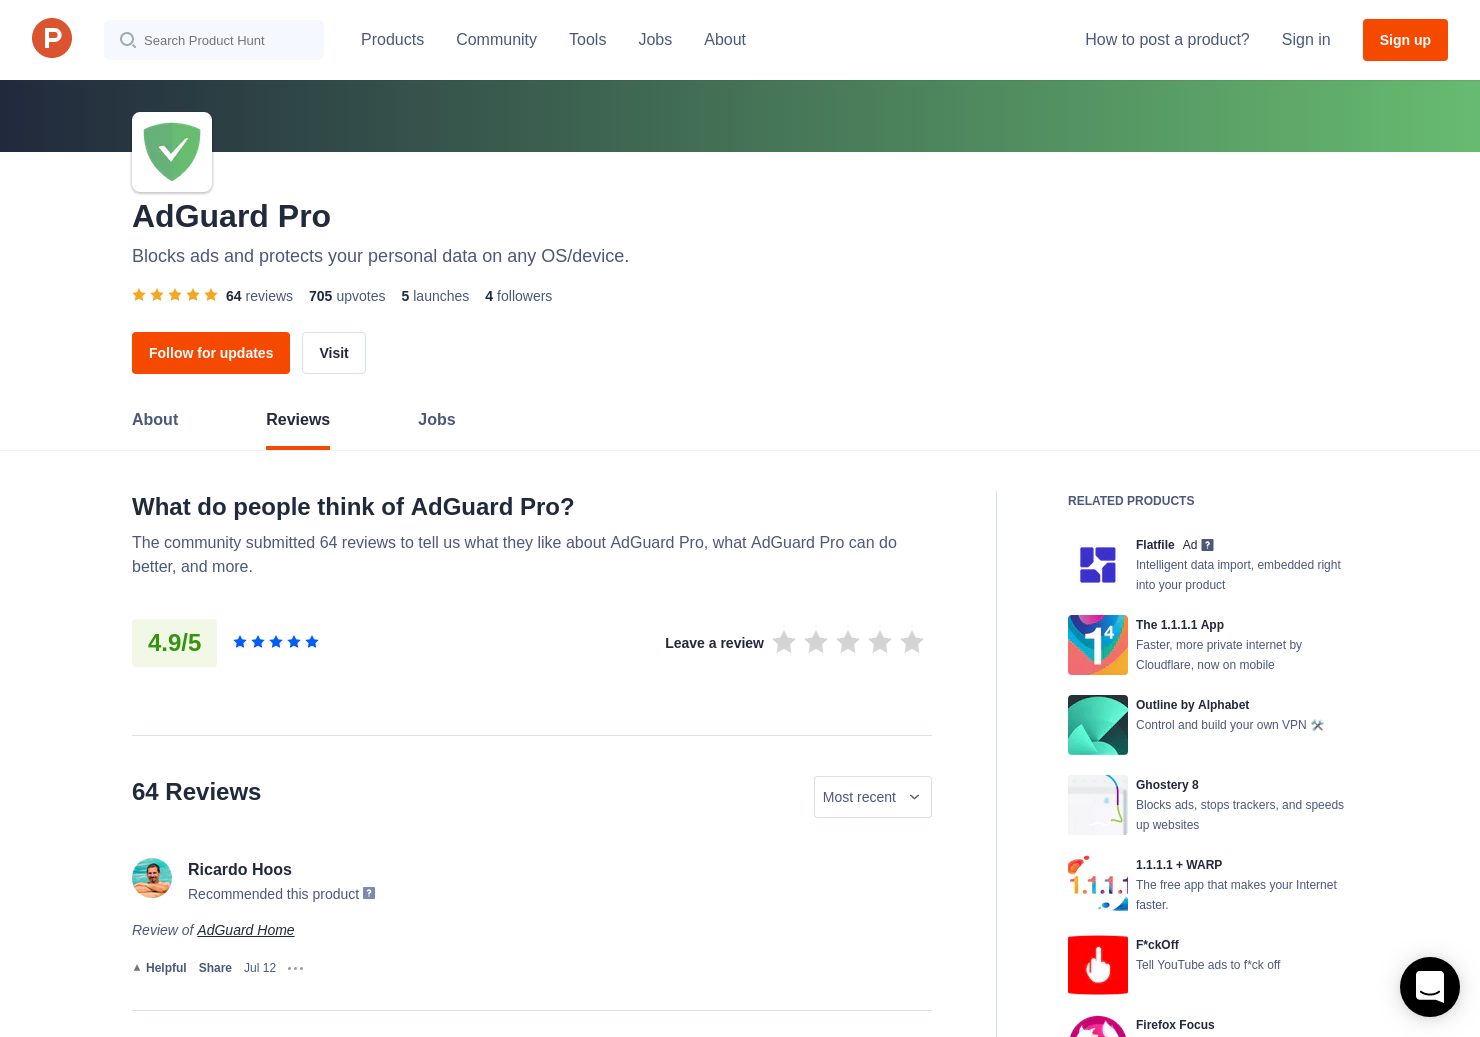 17 AdGuard for iOS Pro 2 0 Reviews - Pros, Cons and Rating